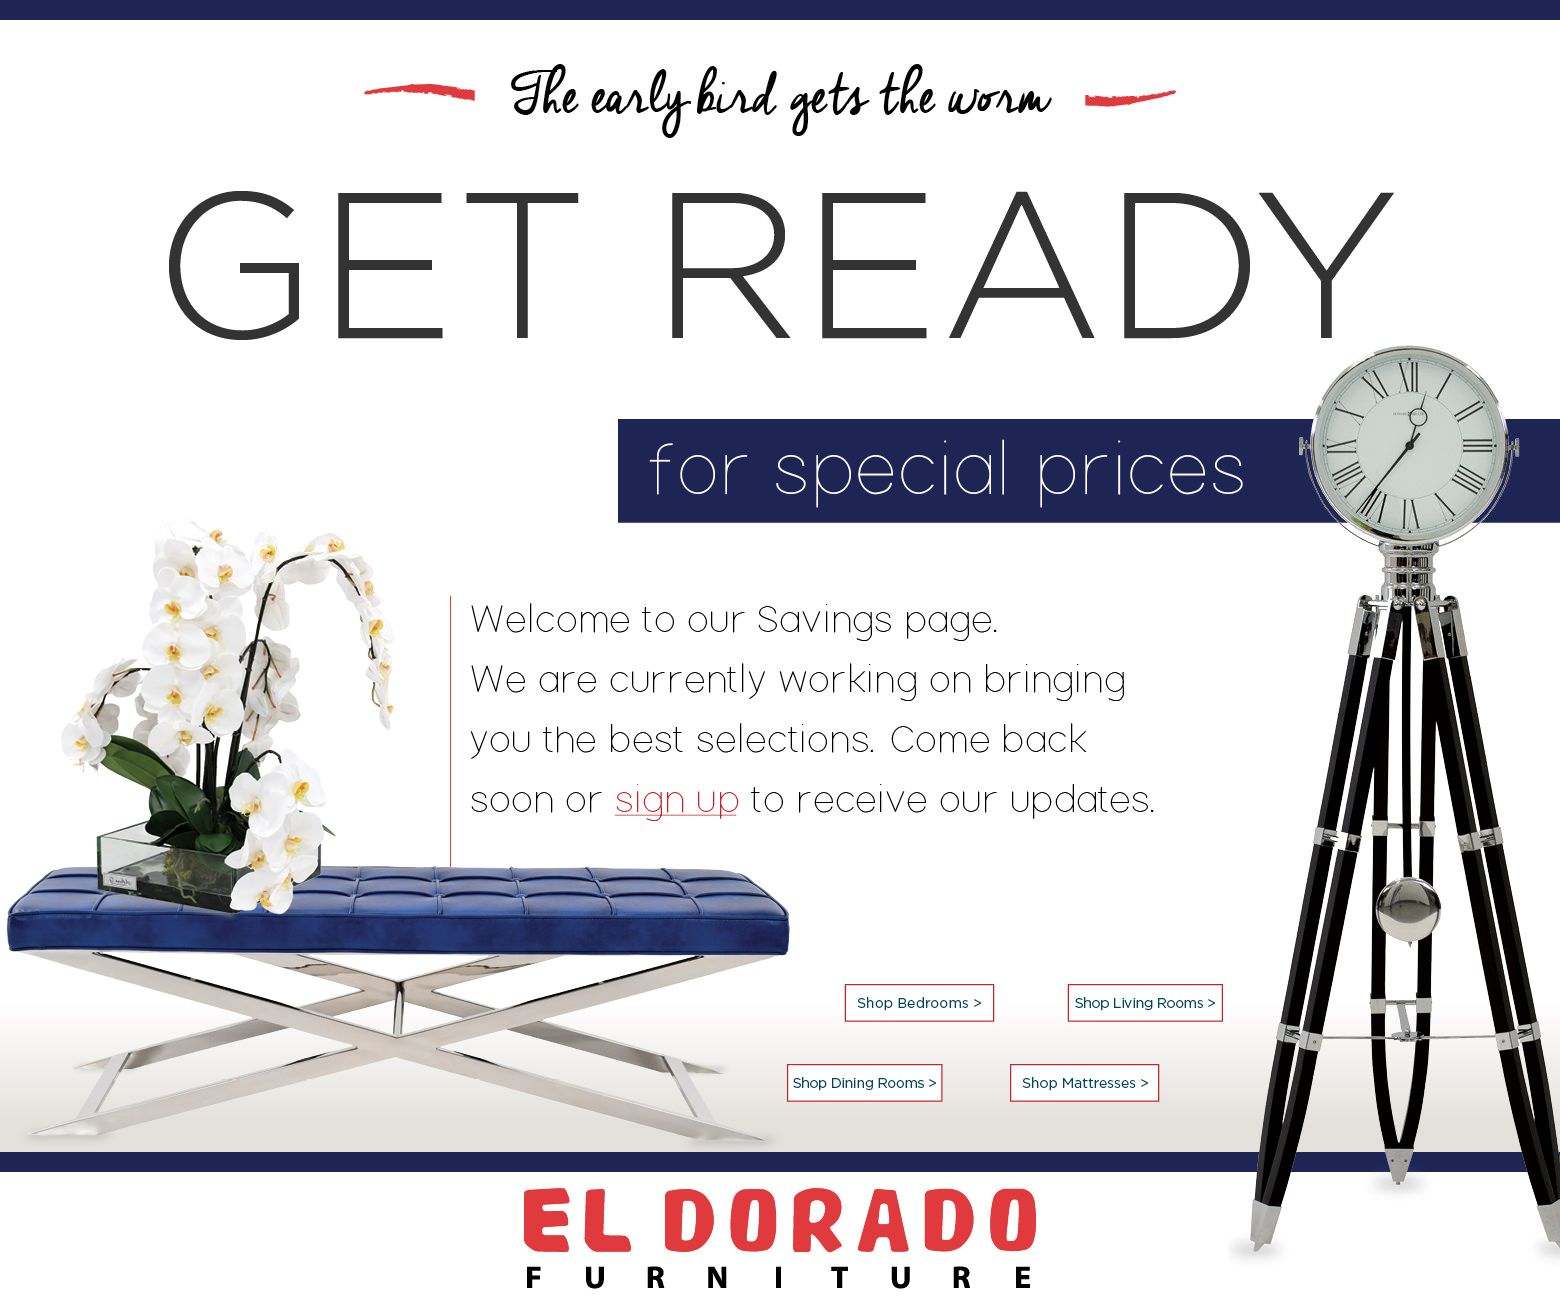 The early bird gets the worm. Get ready for special prices. Welcome to our Savings page. We are currently working on bringing you the best selections. Come back soon or sign up to receive our updates. Shop Bedrooms. Shop Living Rooms. Shop Dining Rooms. Shop Mattresses. El Dorado Furniture.